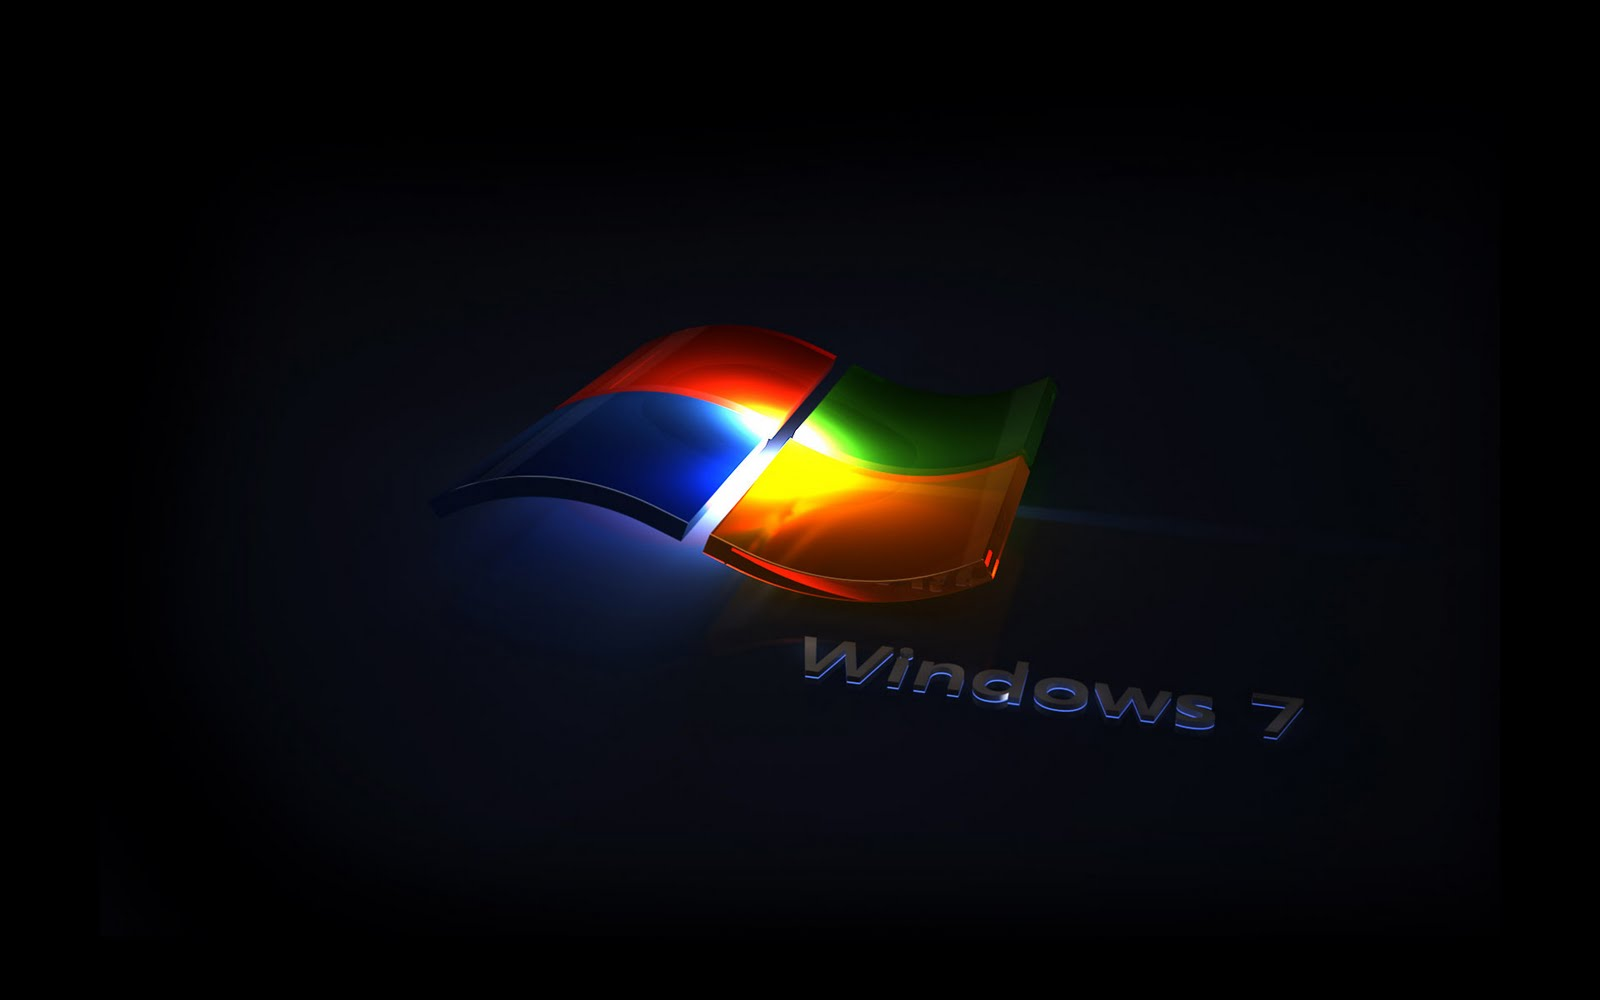 Windows 7 Desktop Backgrounds 1920X1080